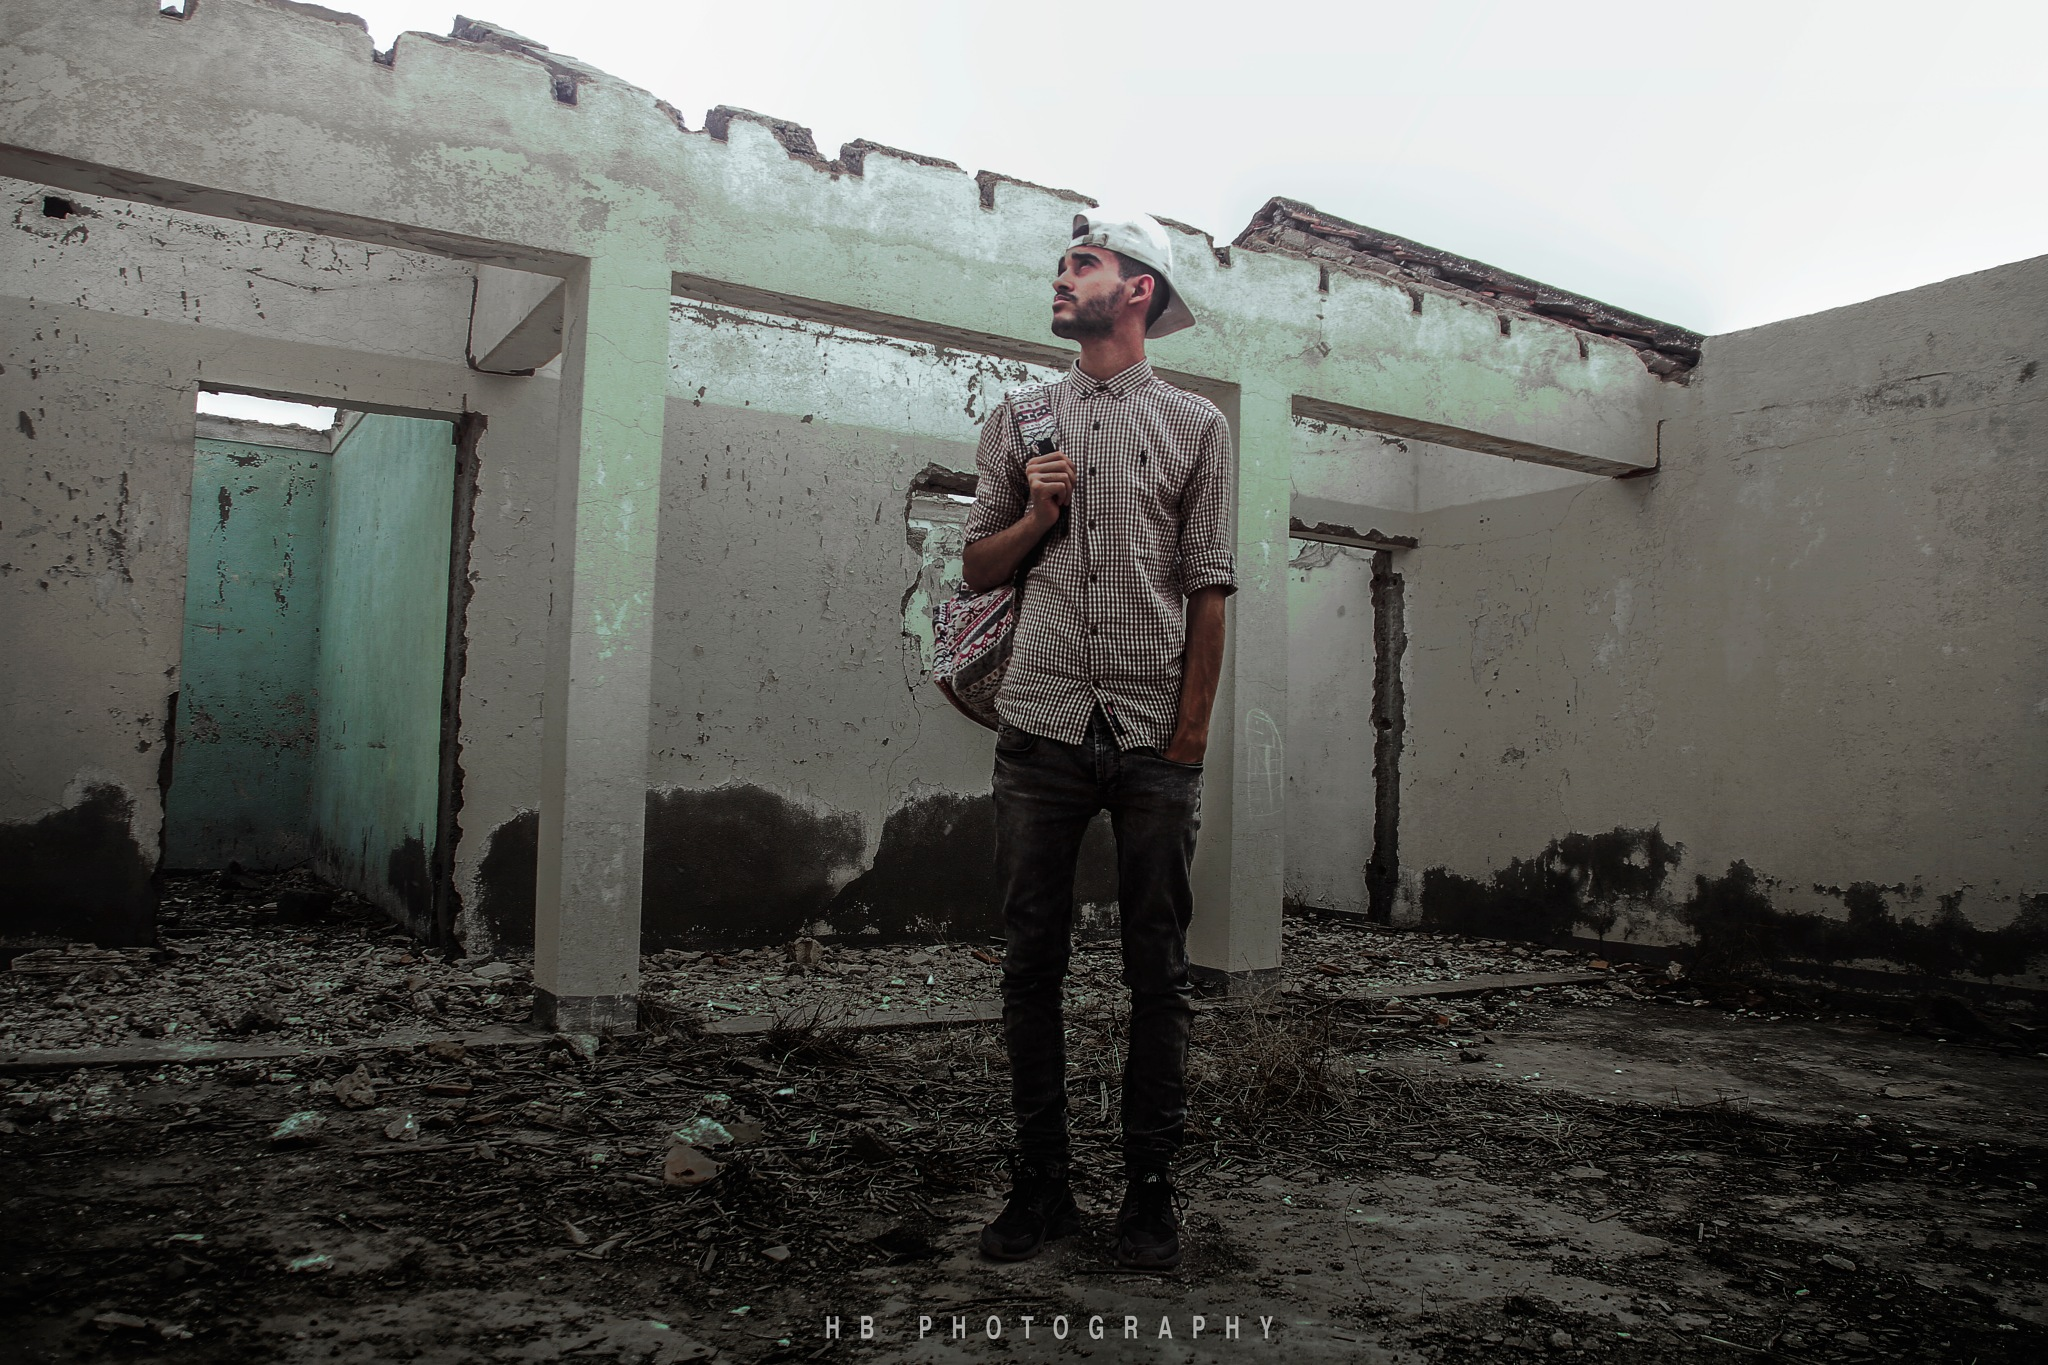 lonly in the destruction by Houssam Benghalia